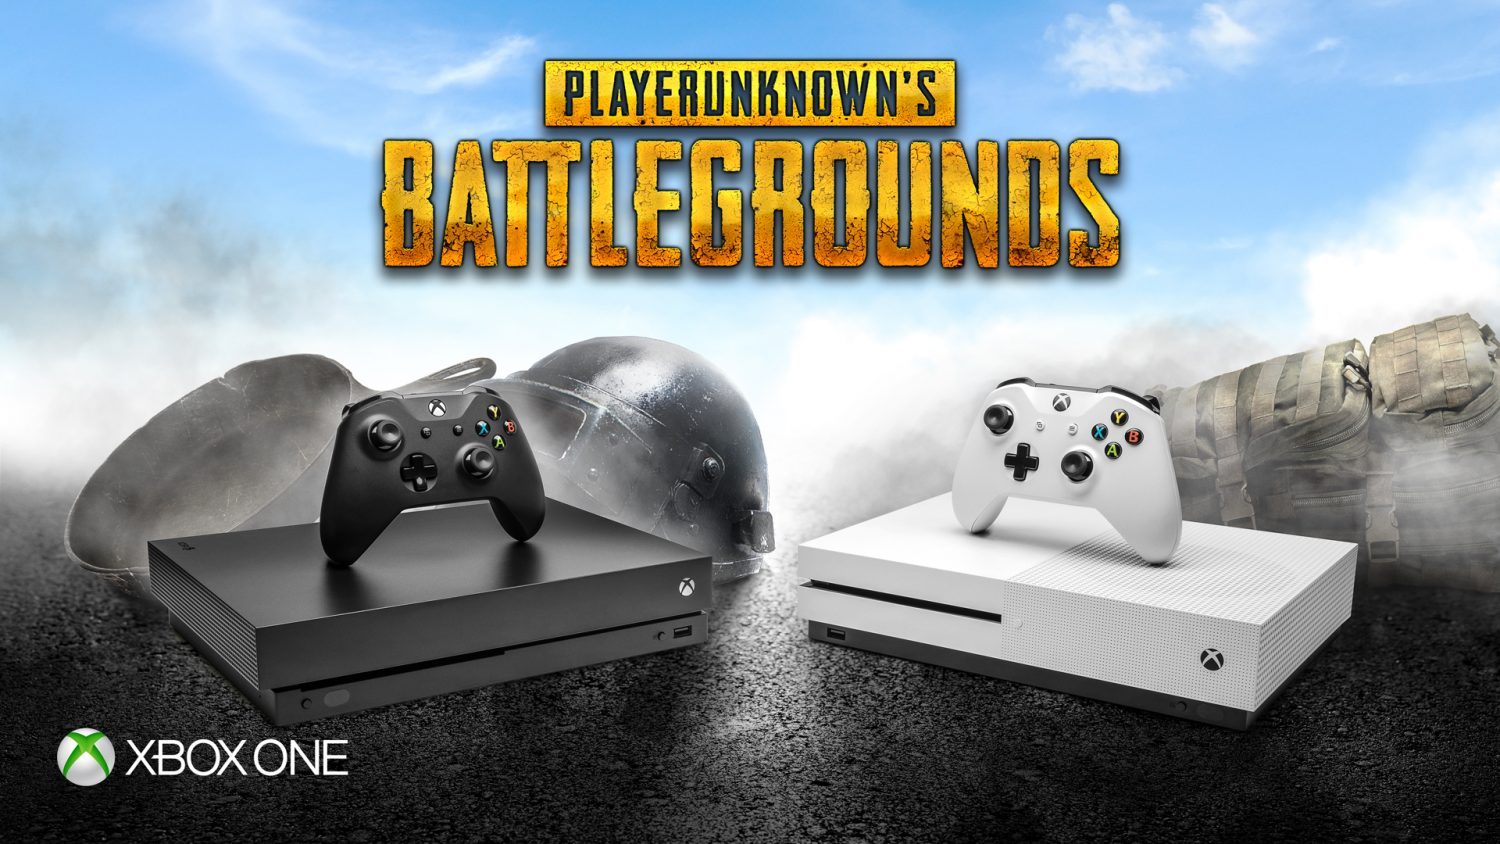 PUBG launches on Xbox One in December